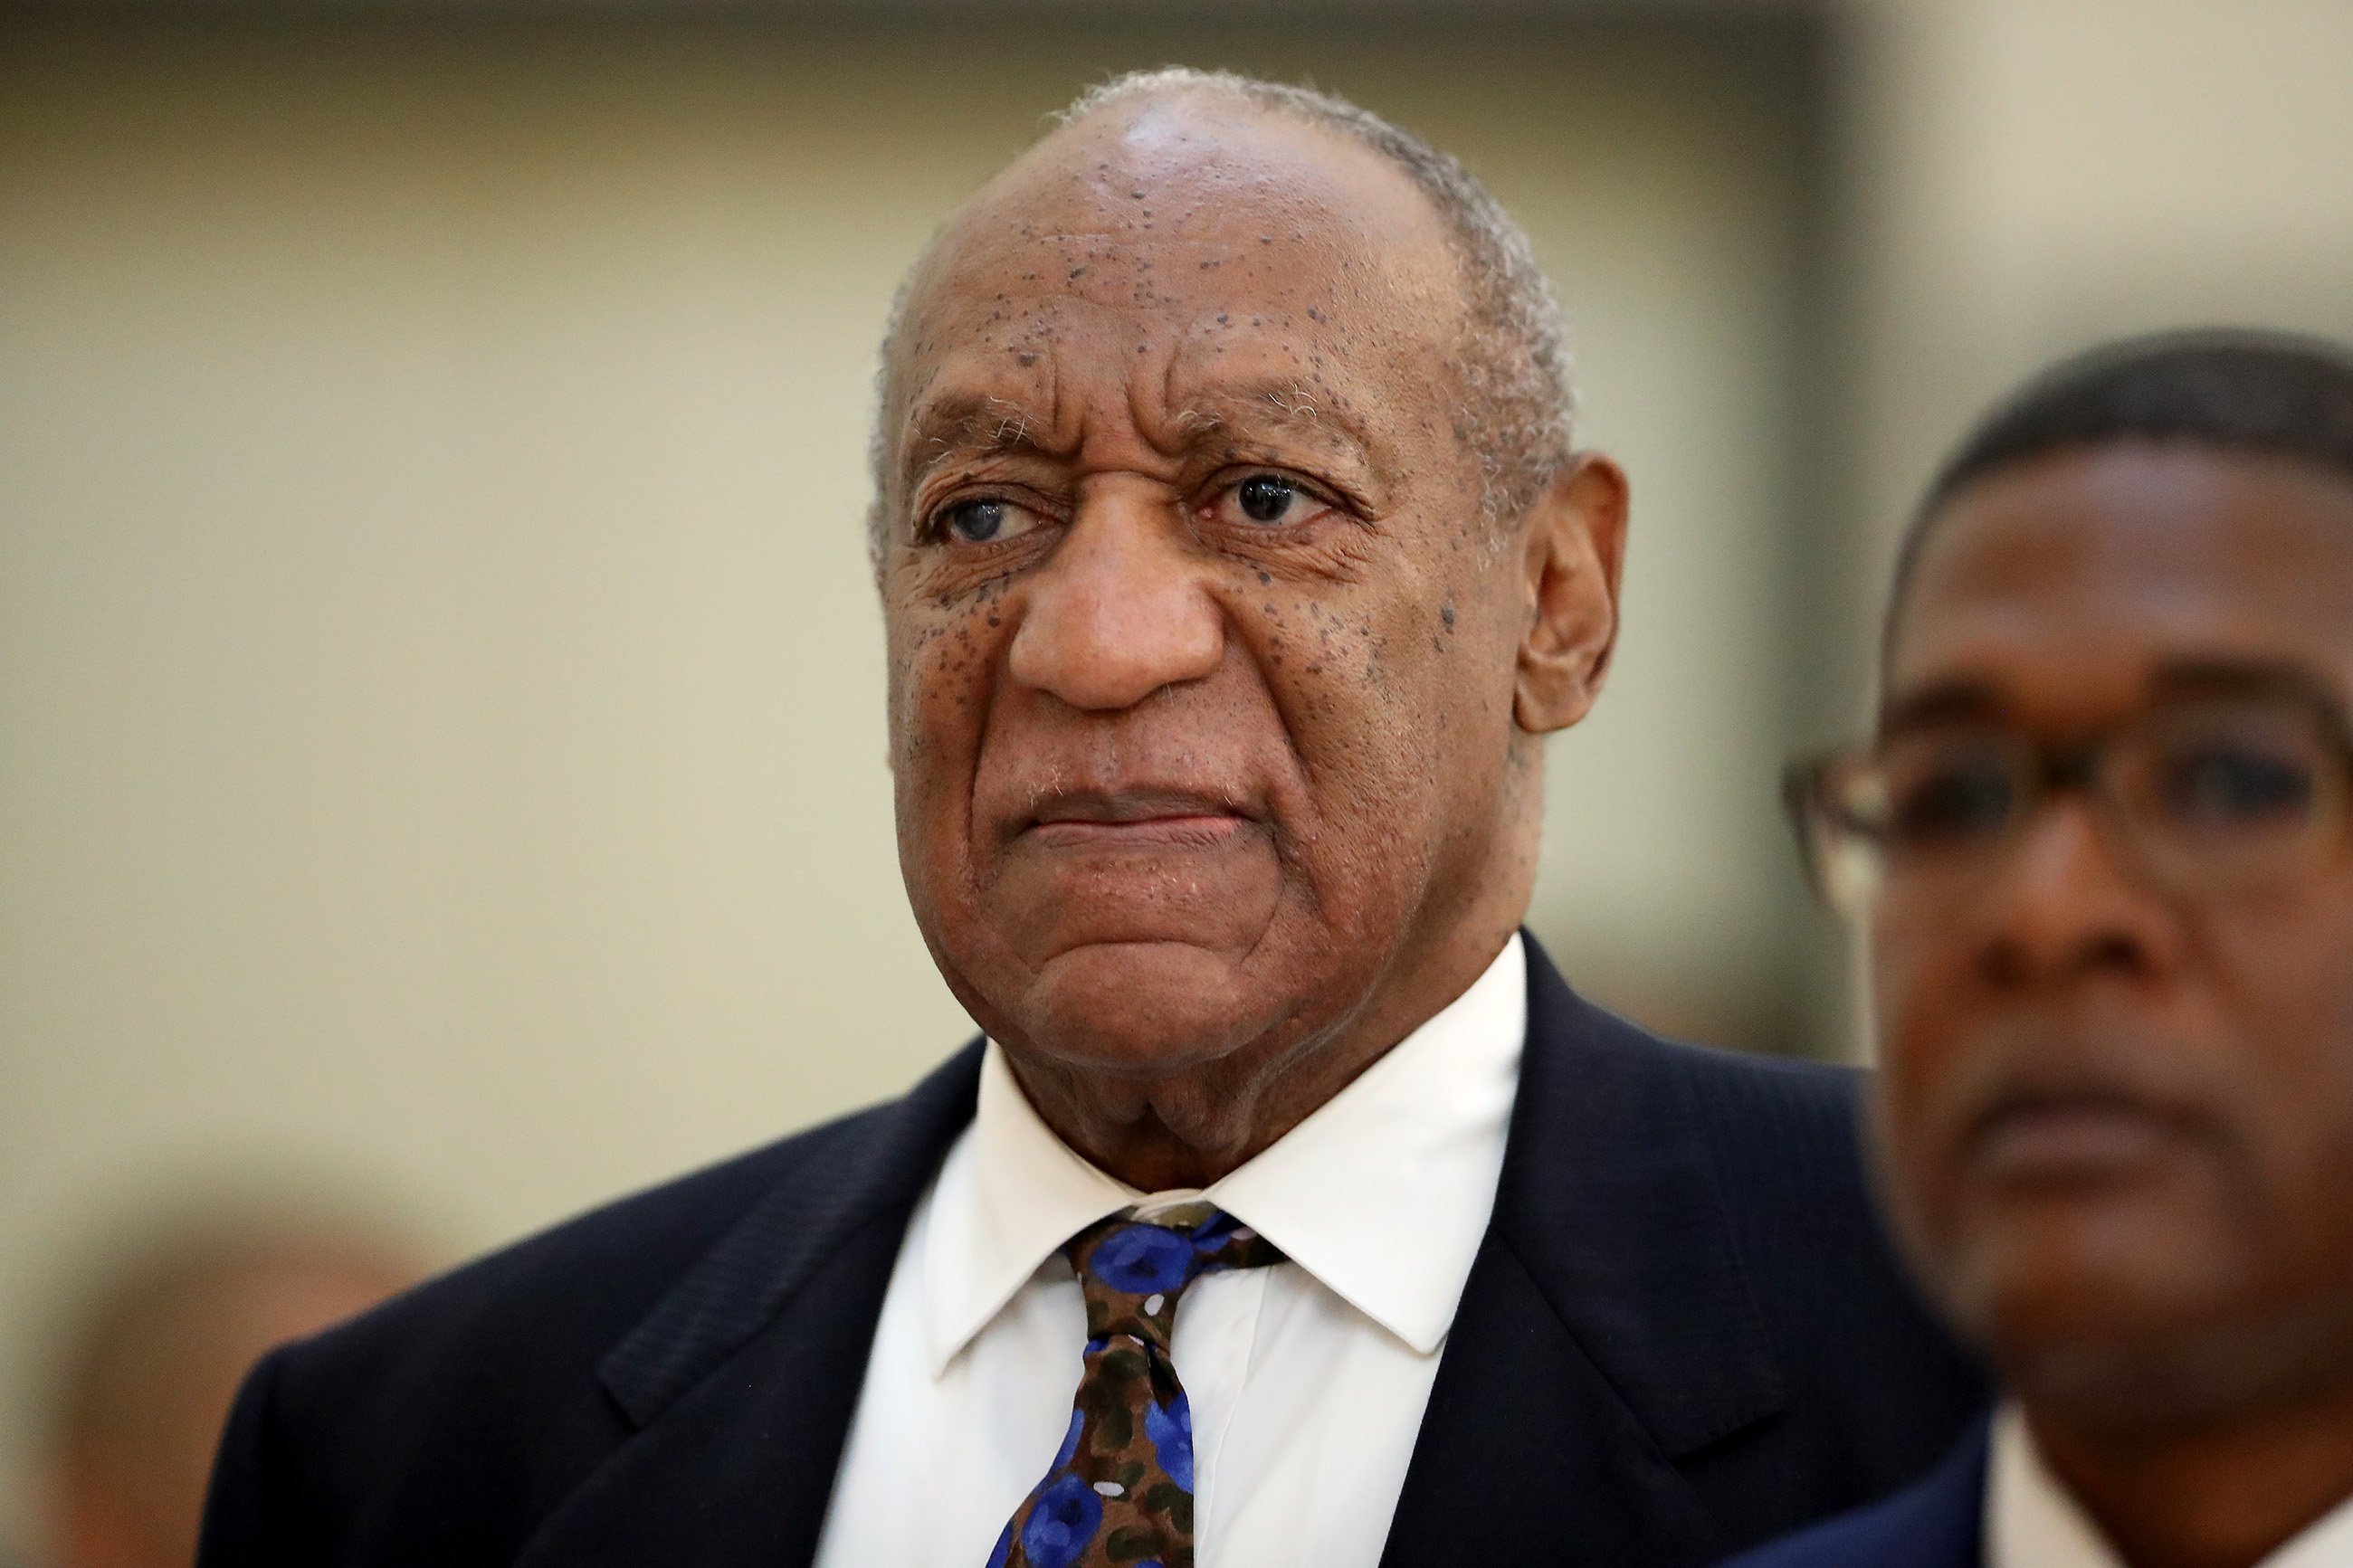 Bill Cosby during a court appearance | Photo: Getty Images